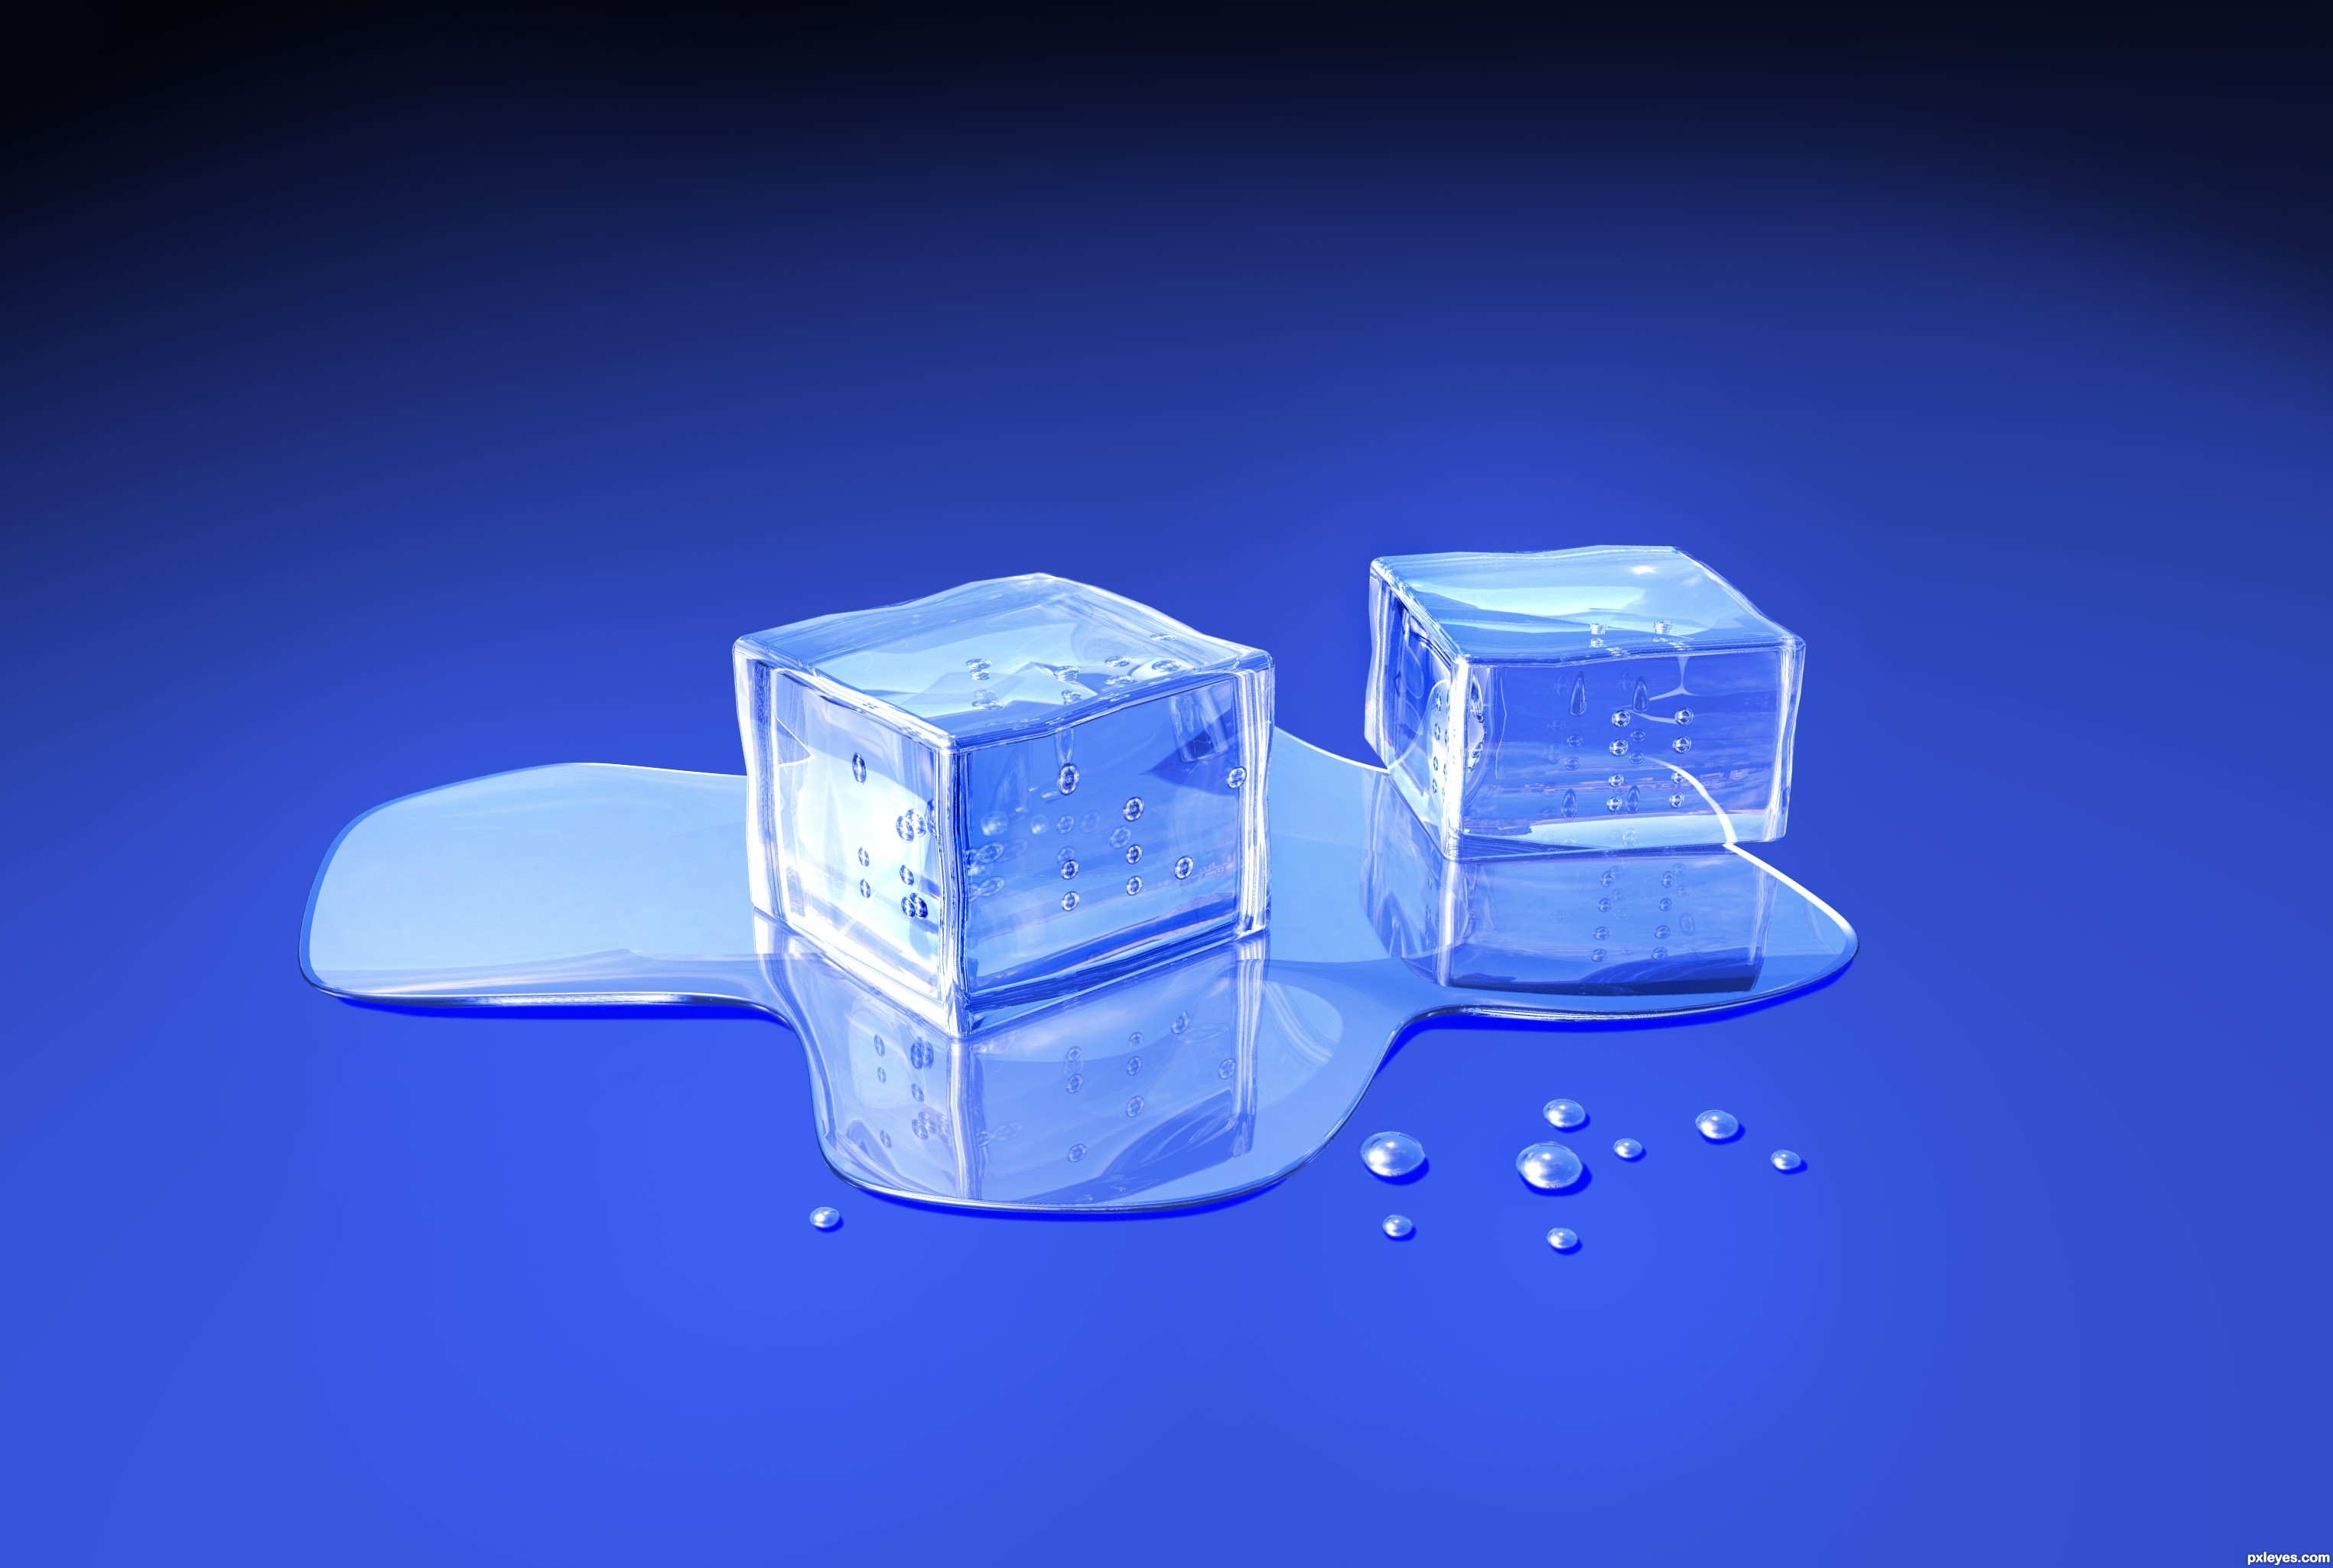 Ice_Cube picture, by 1492design for: ice cube 3D contest ...